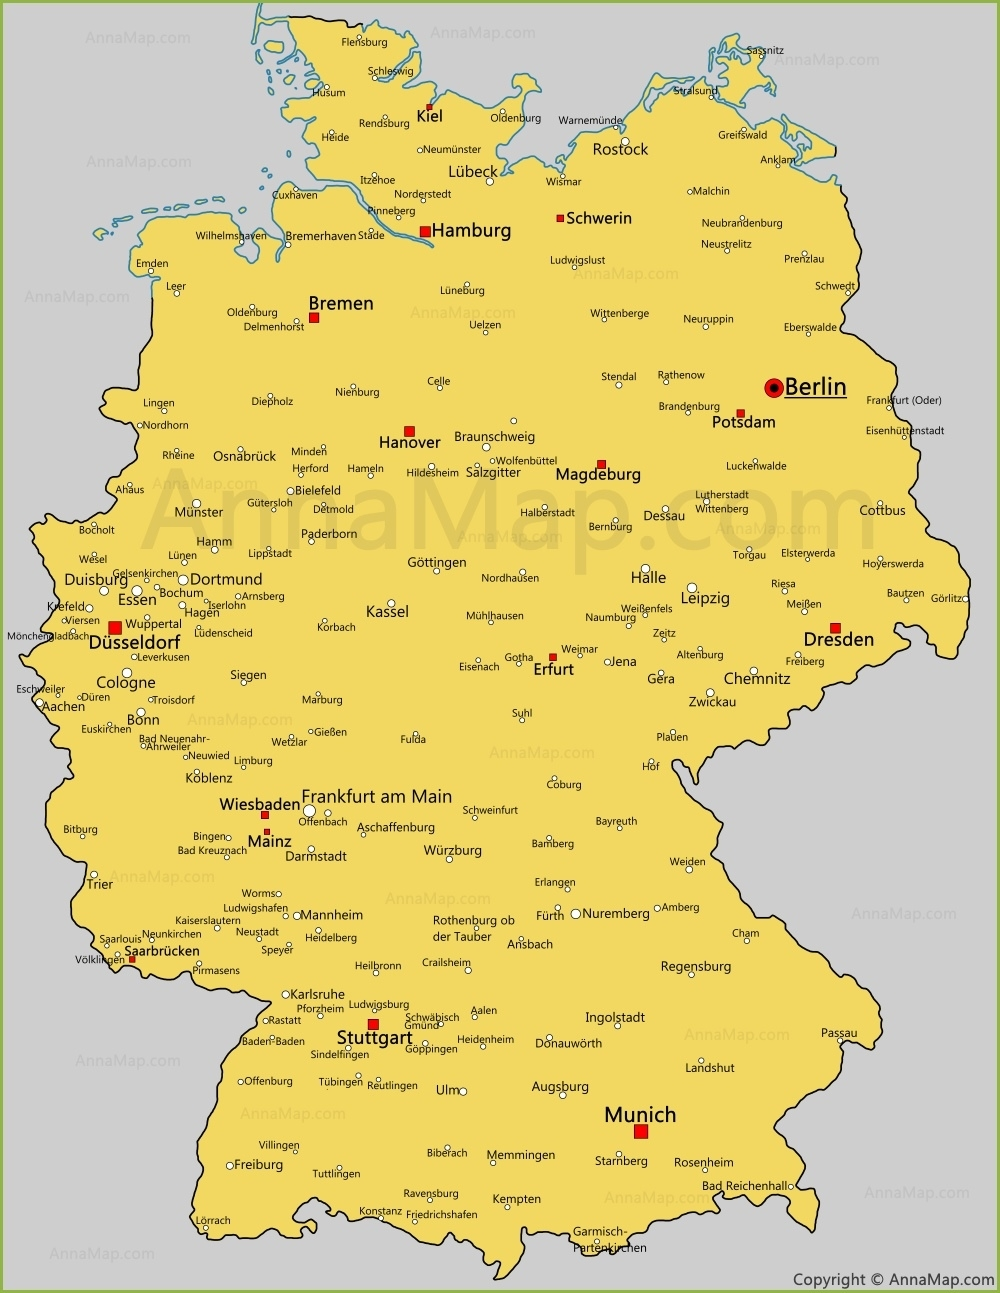 Germany Cities Map | Cities And Towns In Germany - Annamap with regard to Map Of Germany And Cities